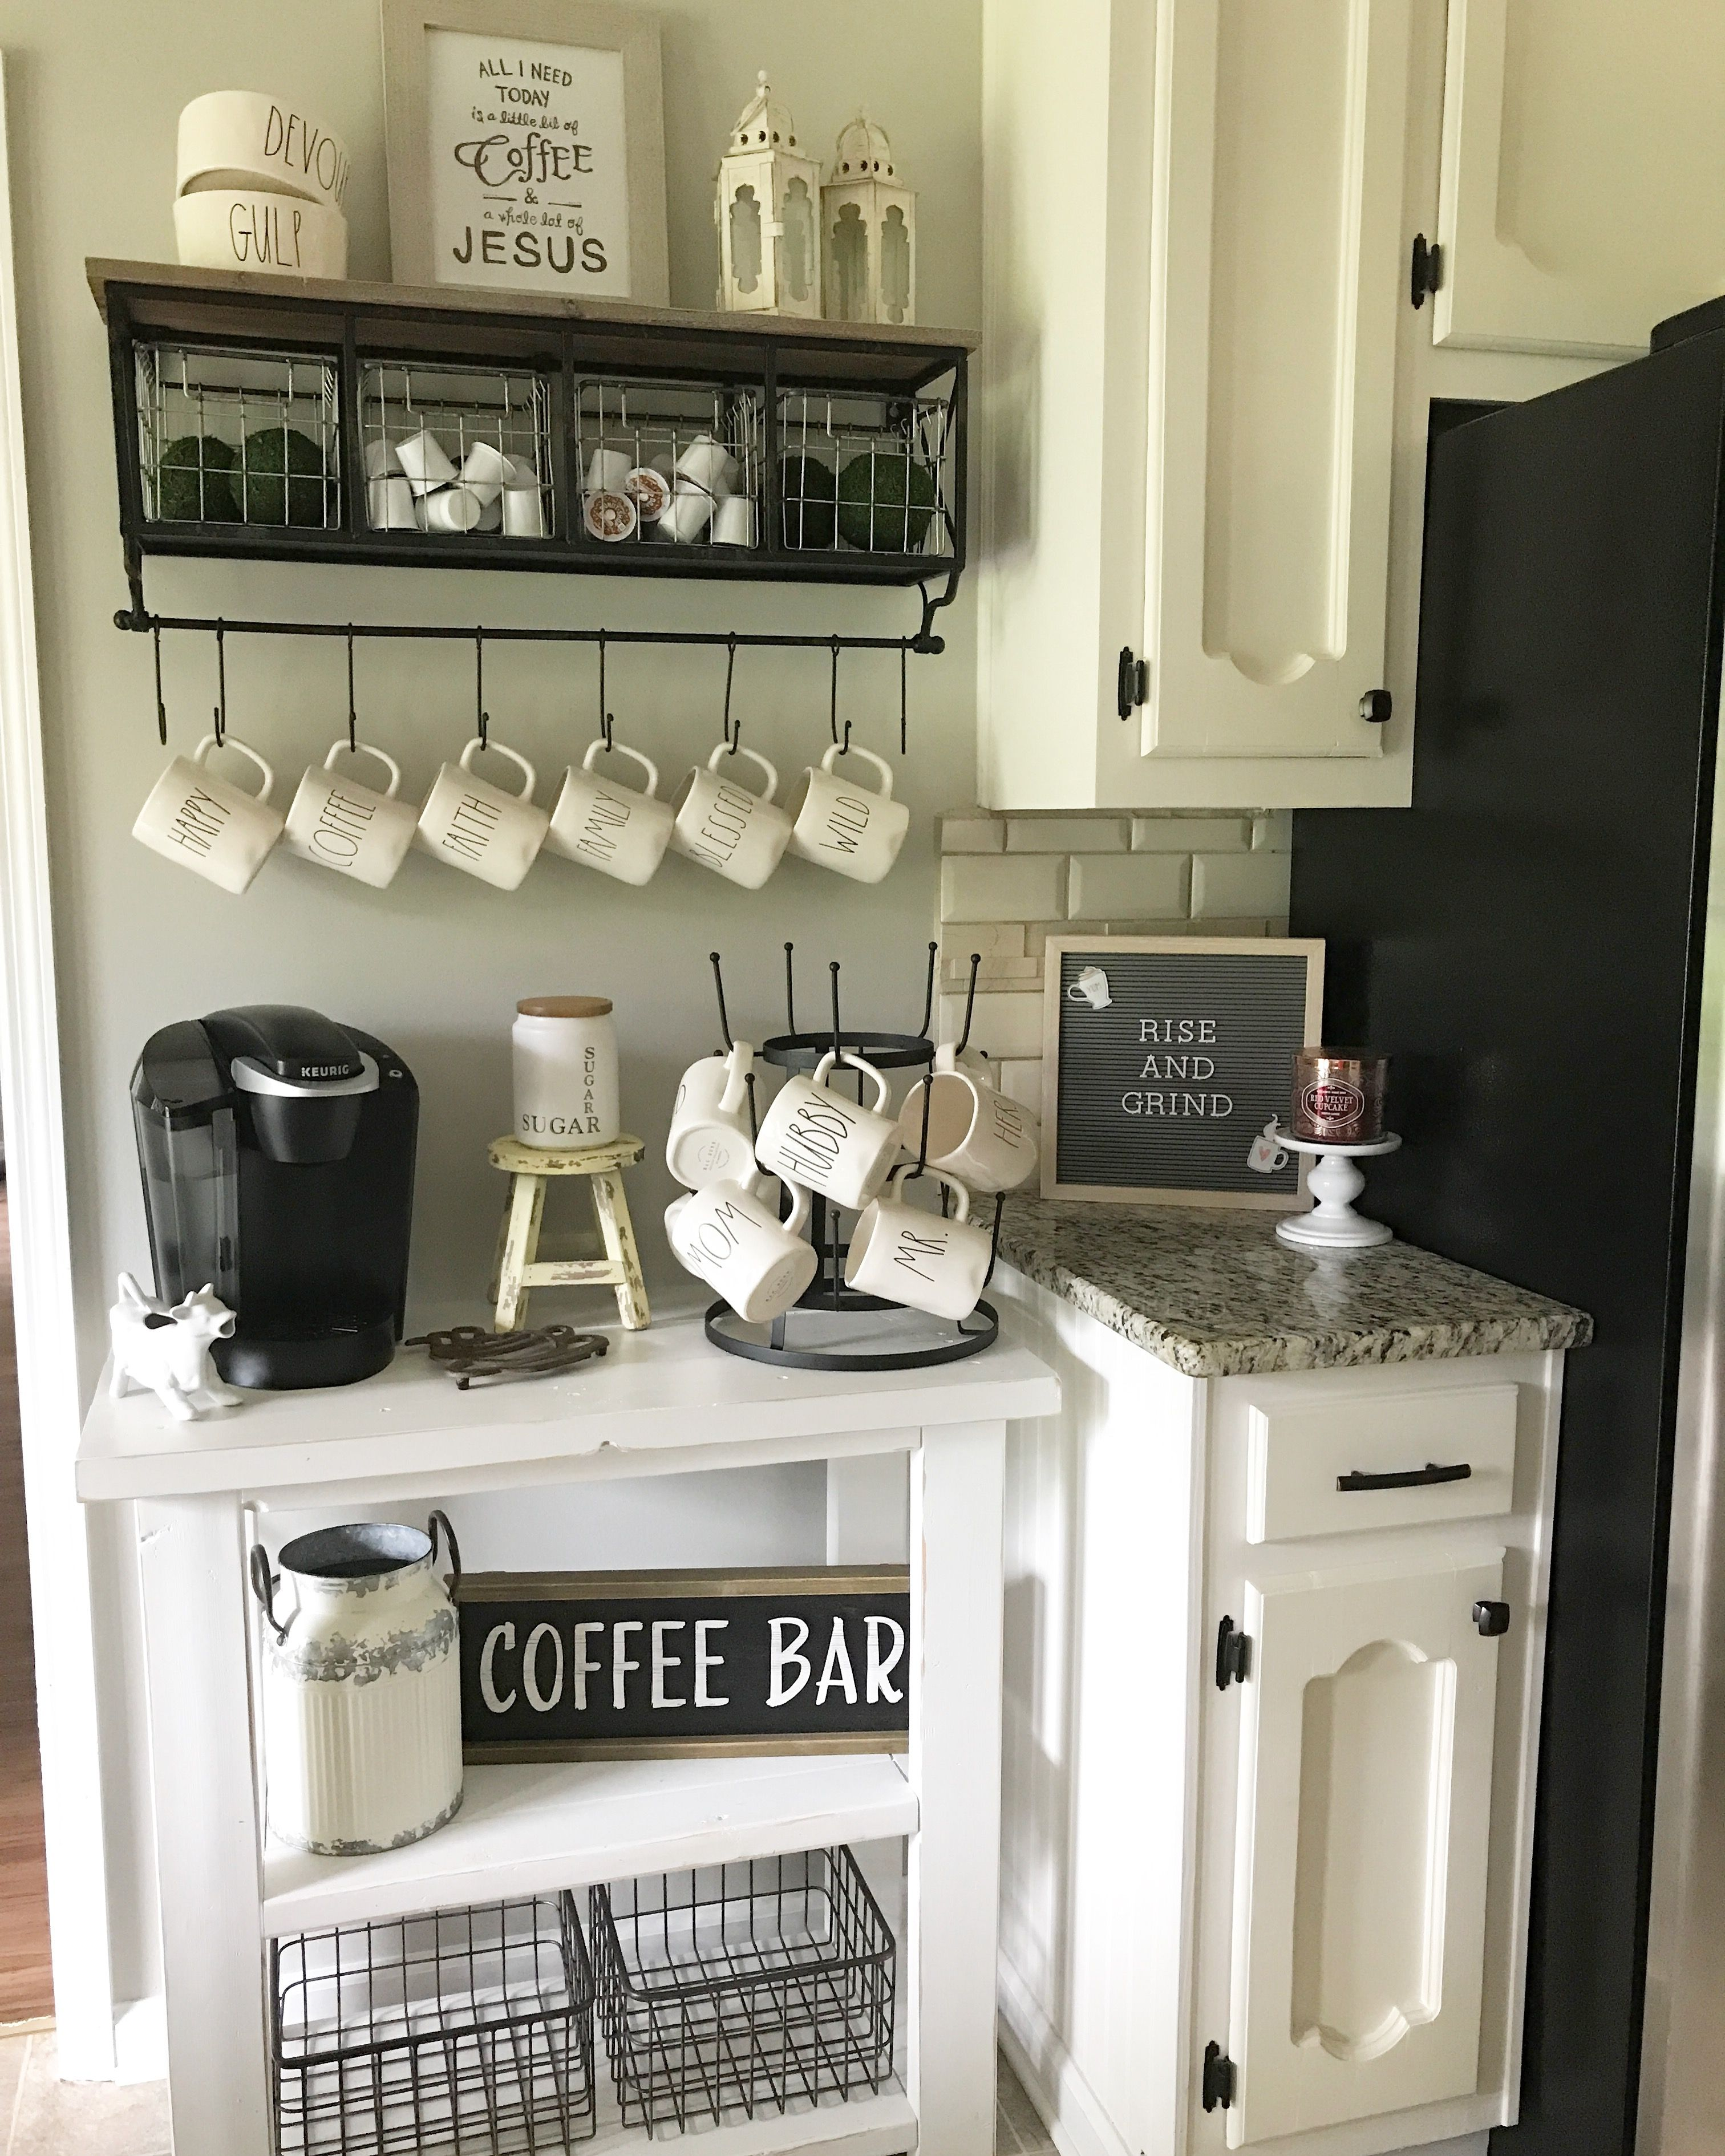 coffee bar in kitchen white shaker cabinets 25 43 diy ideas for your home stunning pictures